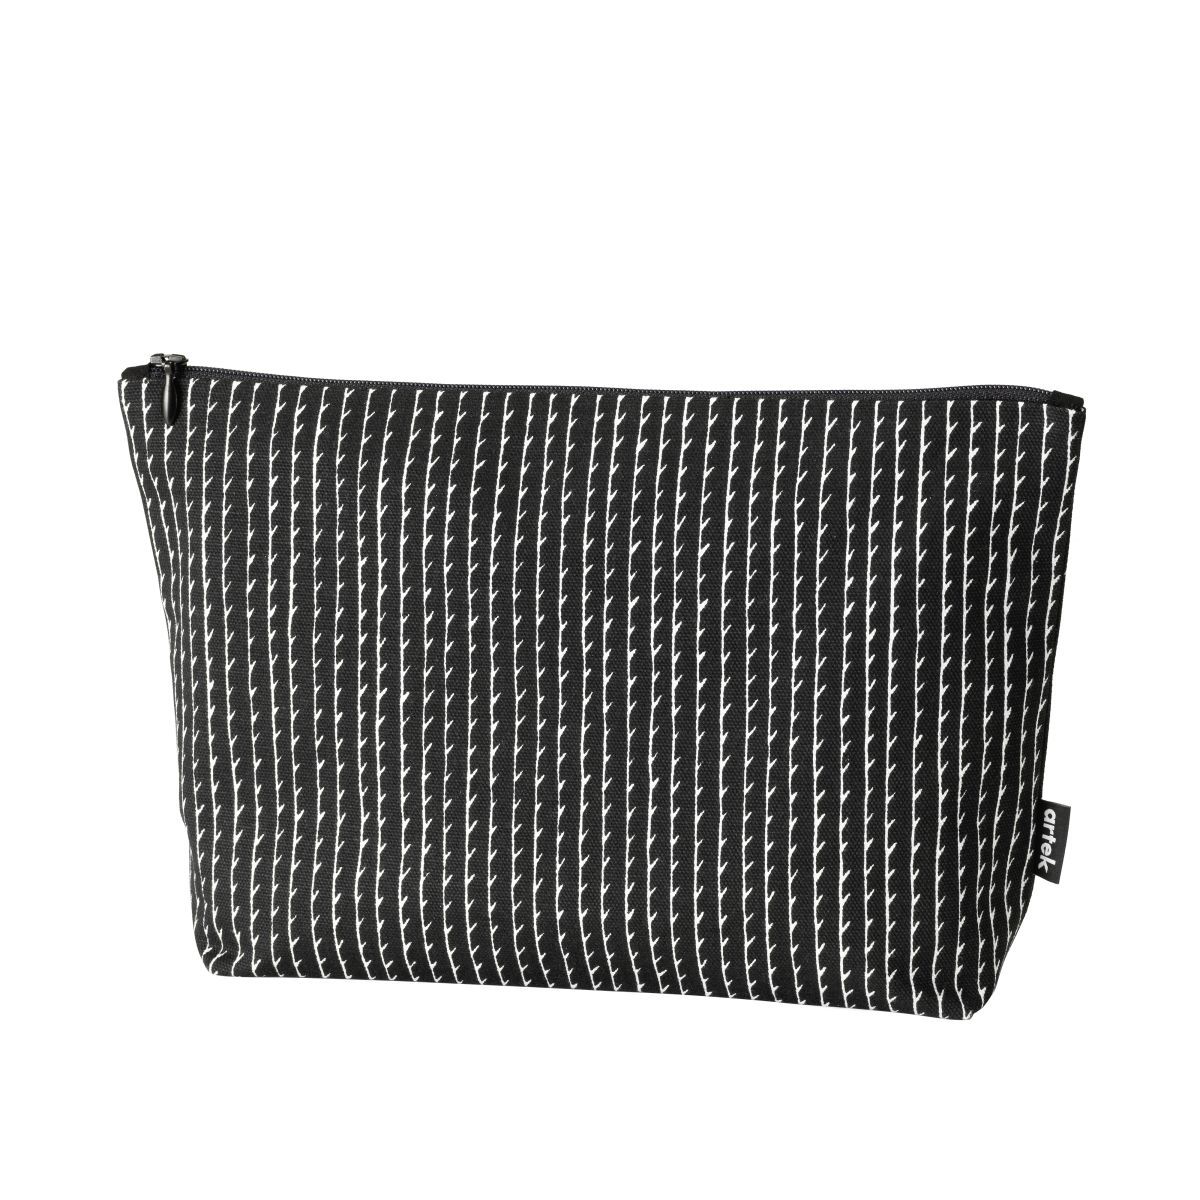 Rivi-Pouch-Black-_-White-Large_F_Web-2411321